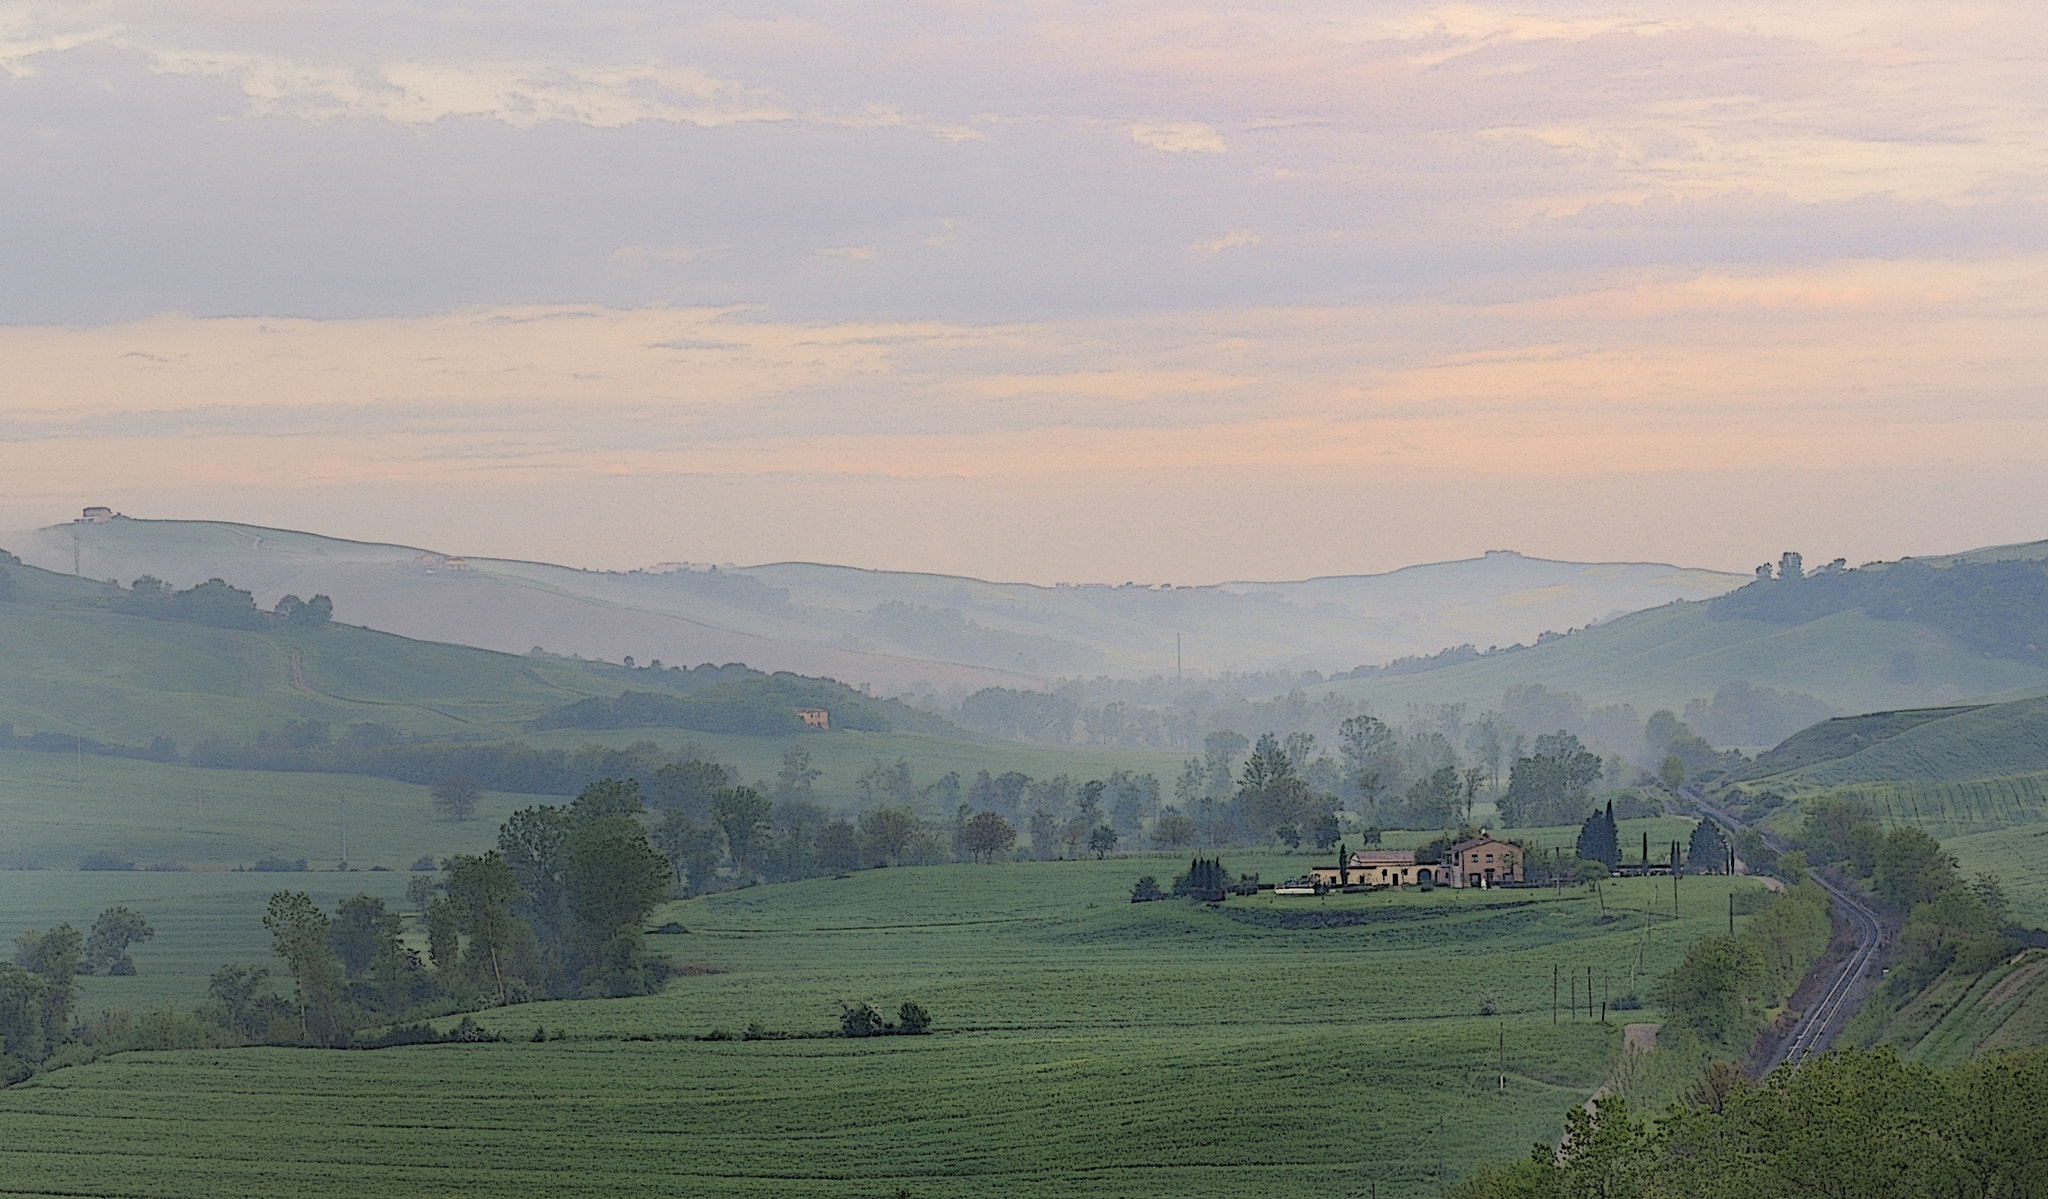 Photograph remember of Tuscany morning by mauro maione on 500px